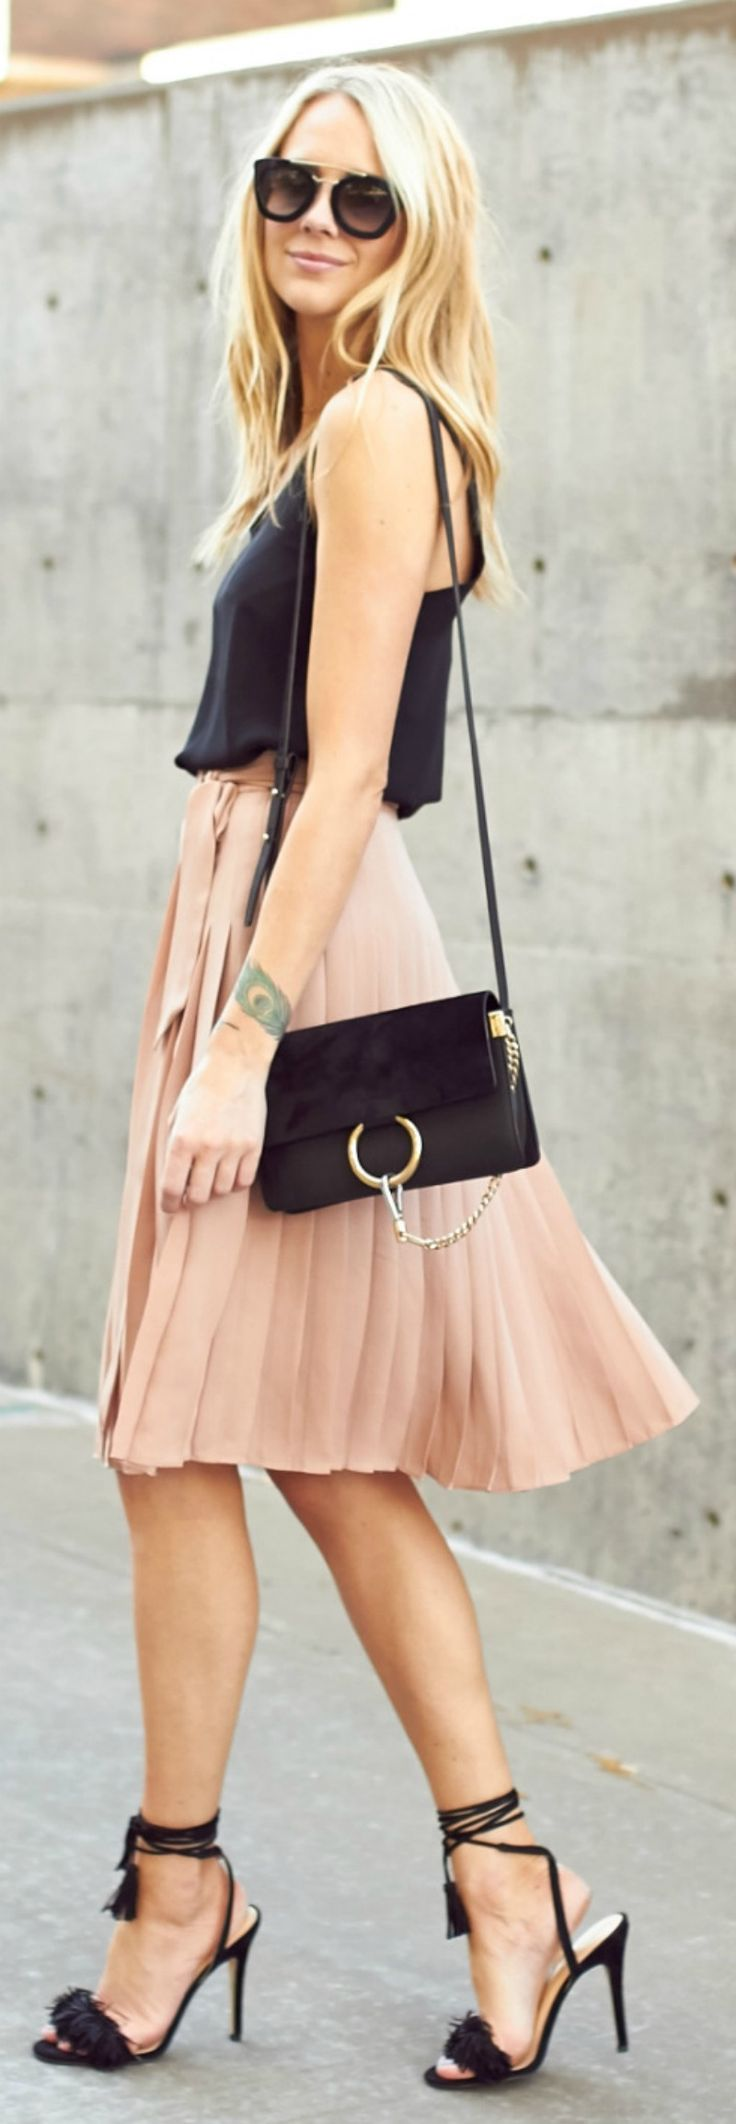 Summer style + salmon pink + pleated skirt + black vest + perfect look + hitting the town + day + night +  Amy Jackson + effortlessly chic + stilettos + sunnies.   Top: Topshop, Skirt: Ann Taylor, Handbag: Chloe, Sunglasses: Prada, Watch: Daniel Wellington